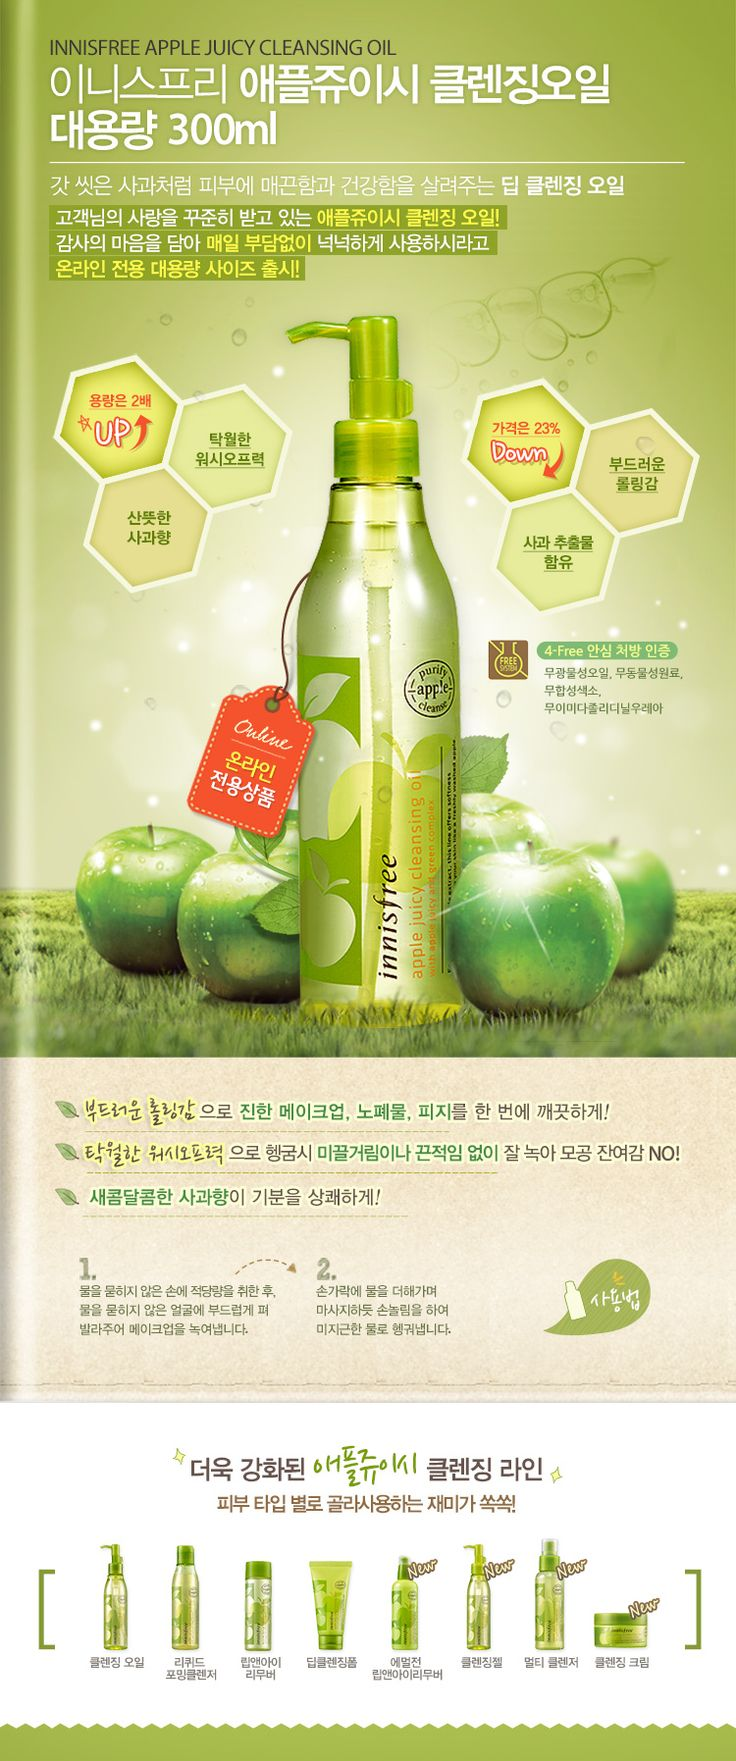 Innisfree Apple Juicy Cleansing Oil 300ML. I use this 2x daily as a double cleanser (this one before my foam cleanser). I love the scent but it kinda gets to you after awhile. The oil is mild enough in my face and so far hasn't broken me out yet though I have only been using it for 3 days.